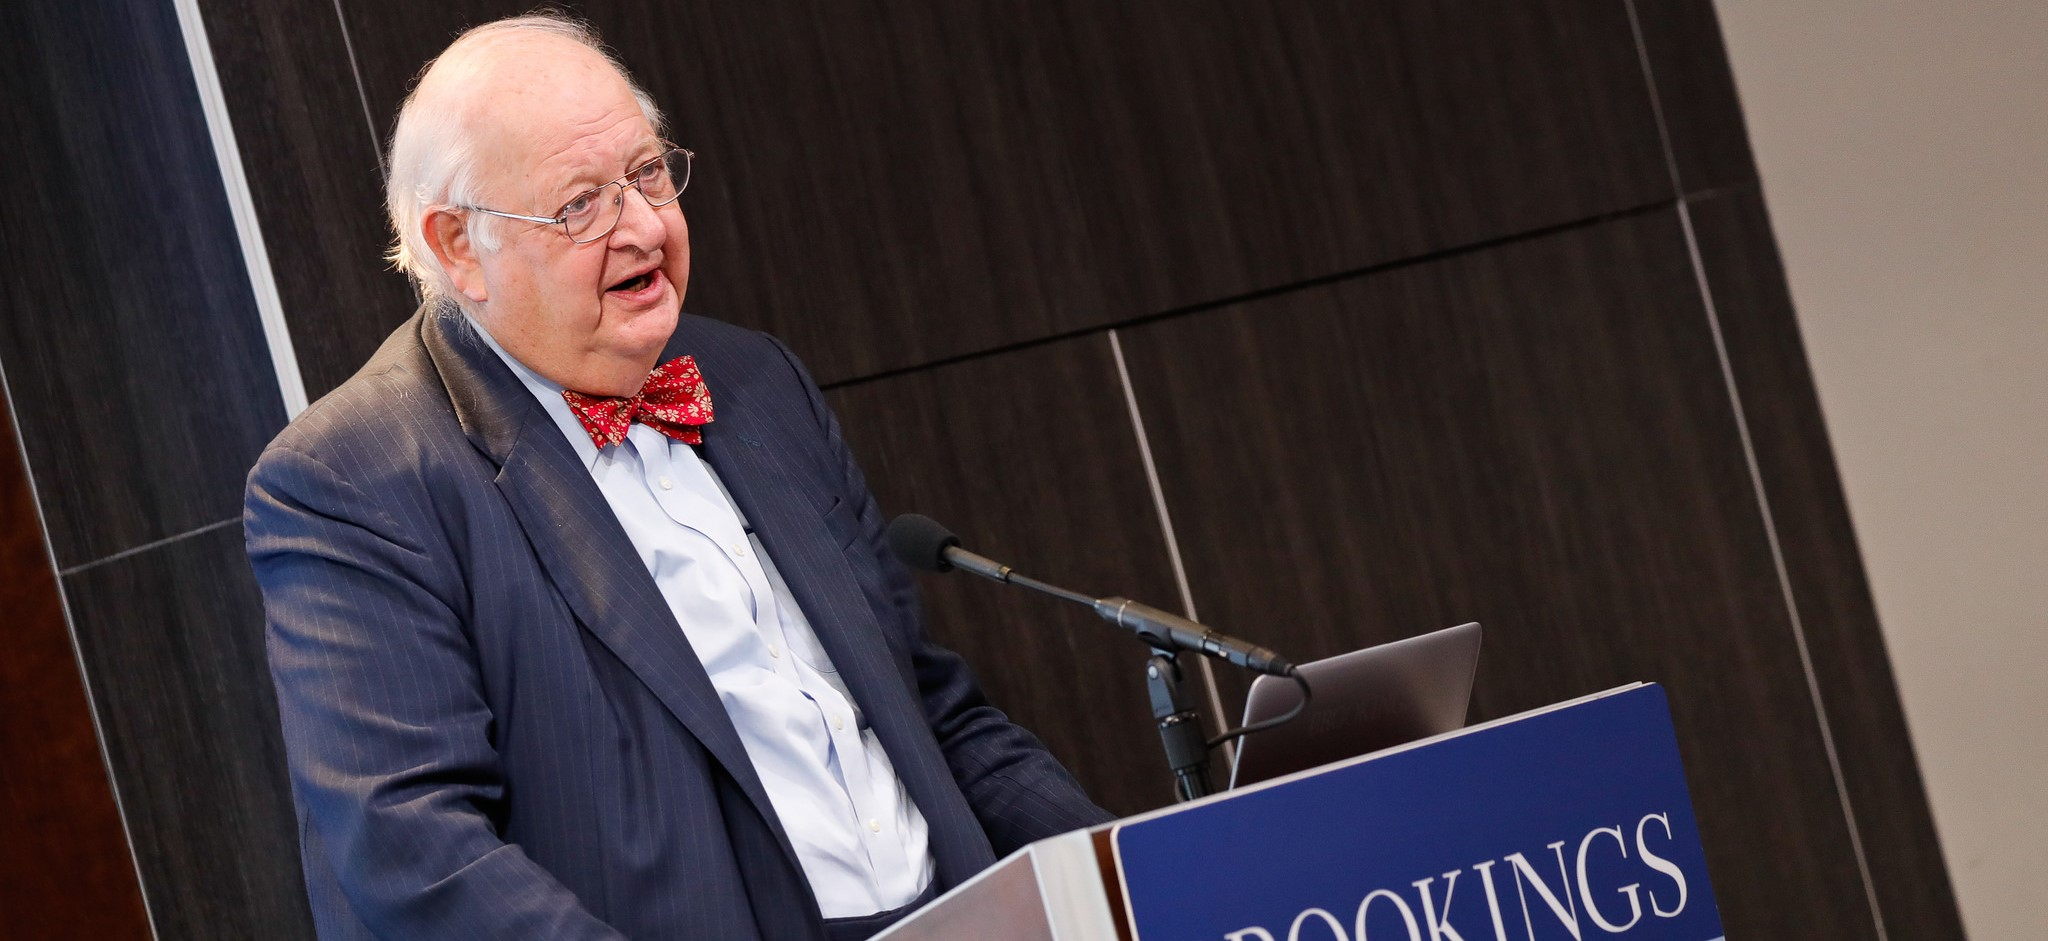 Sir Angus Deaton speaking on the US opioid crisis at the Brookings Institution, November 2017 (Photo: Brookings/Flickr)